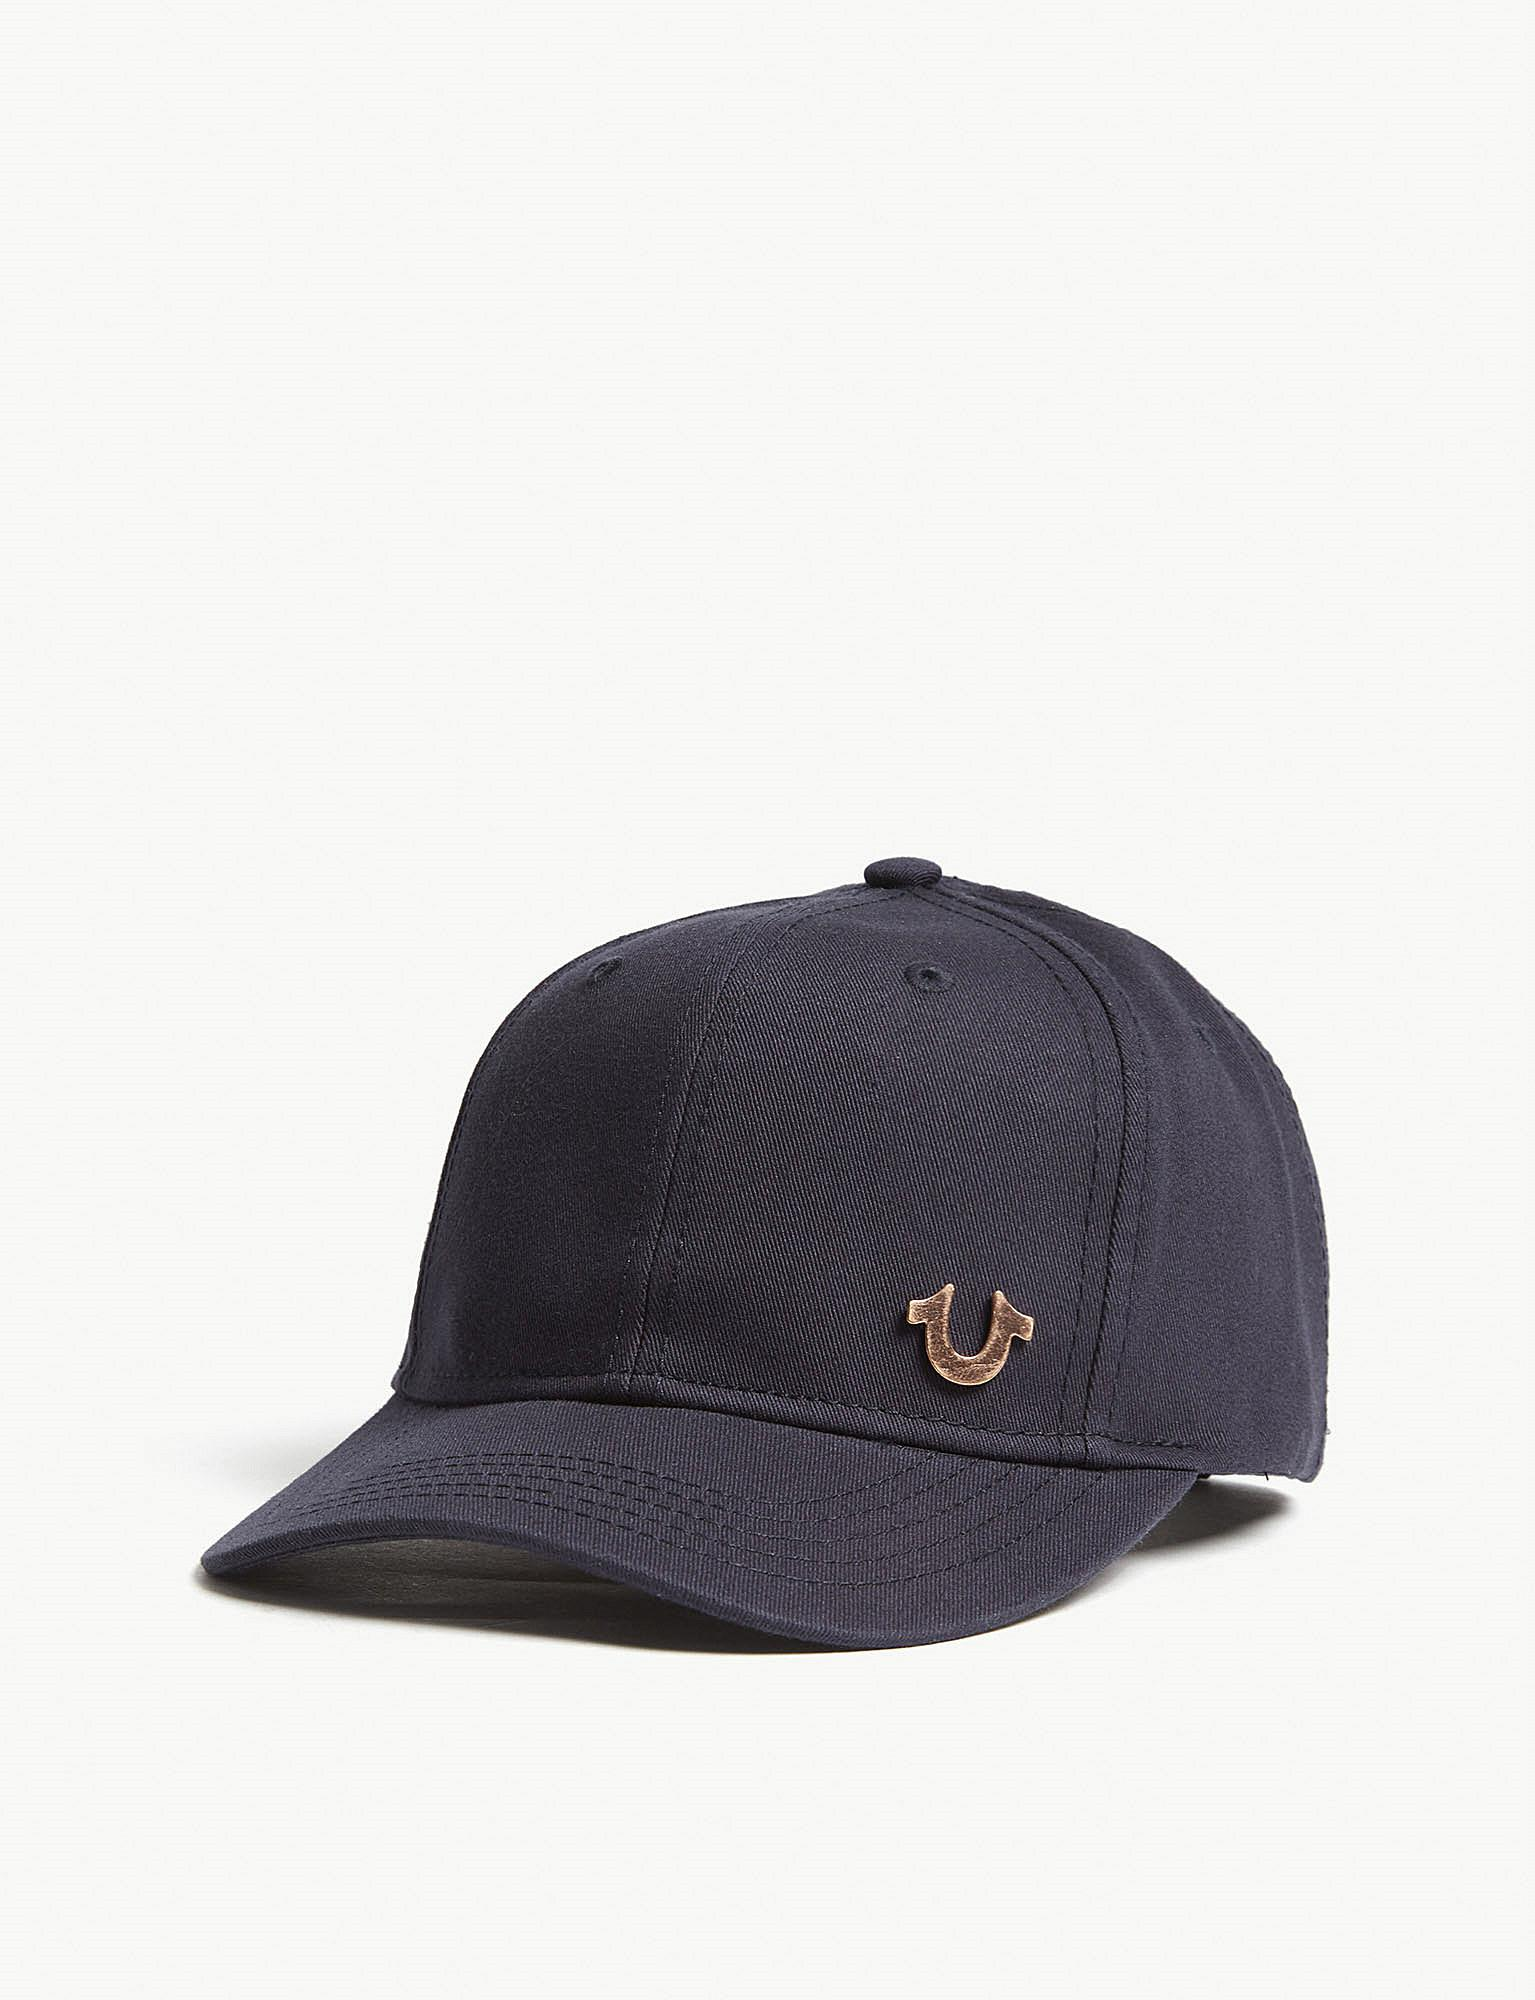 f4f68ef18b25f True Religion Logo Cotton Snapback Cap in Blue for Men - Lyst